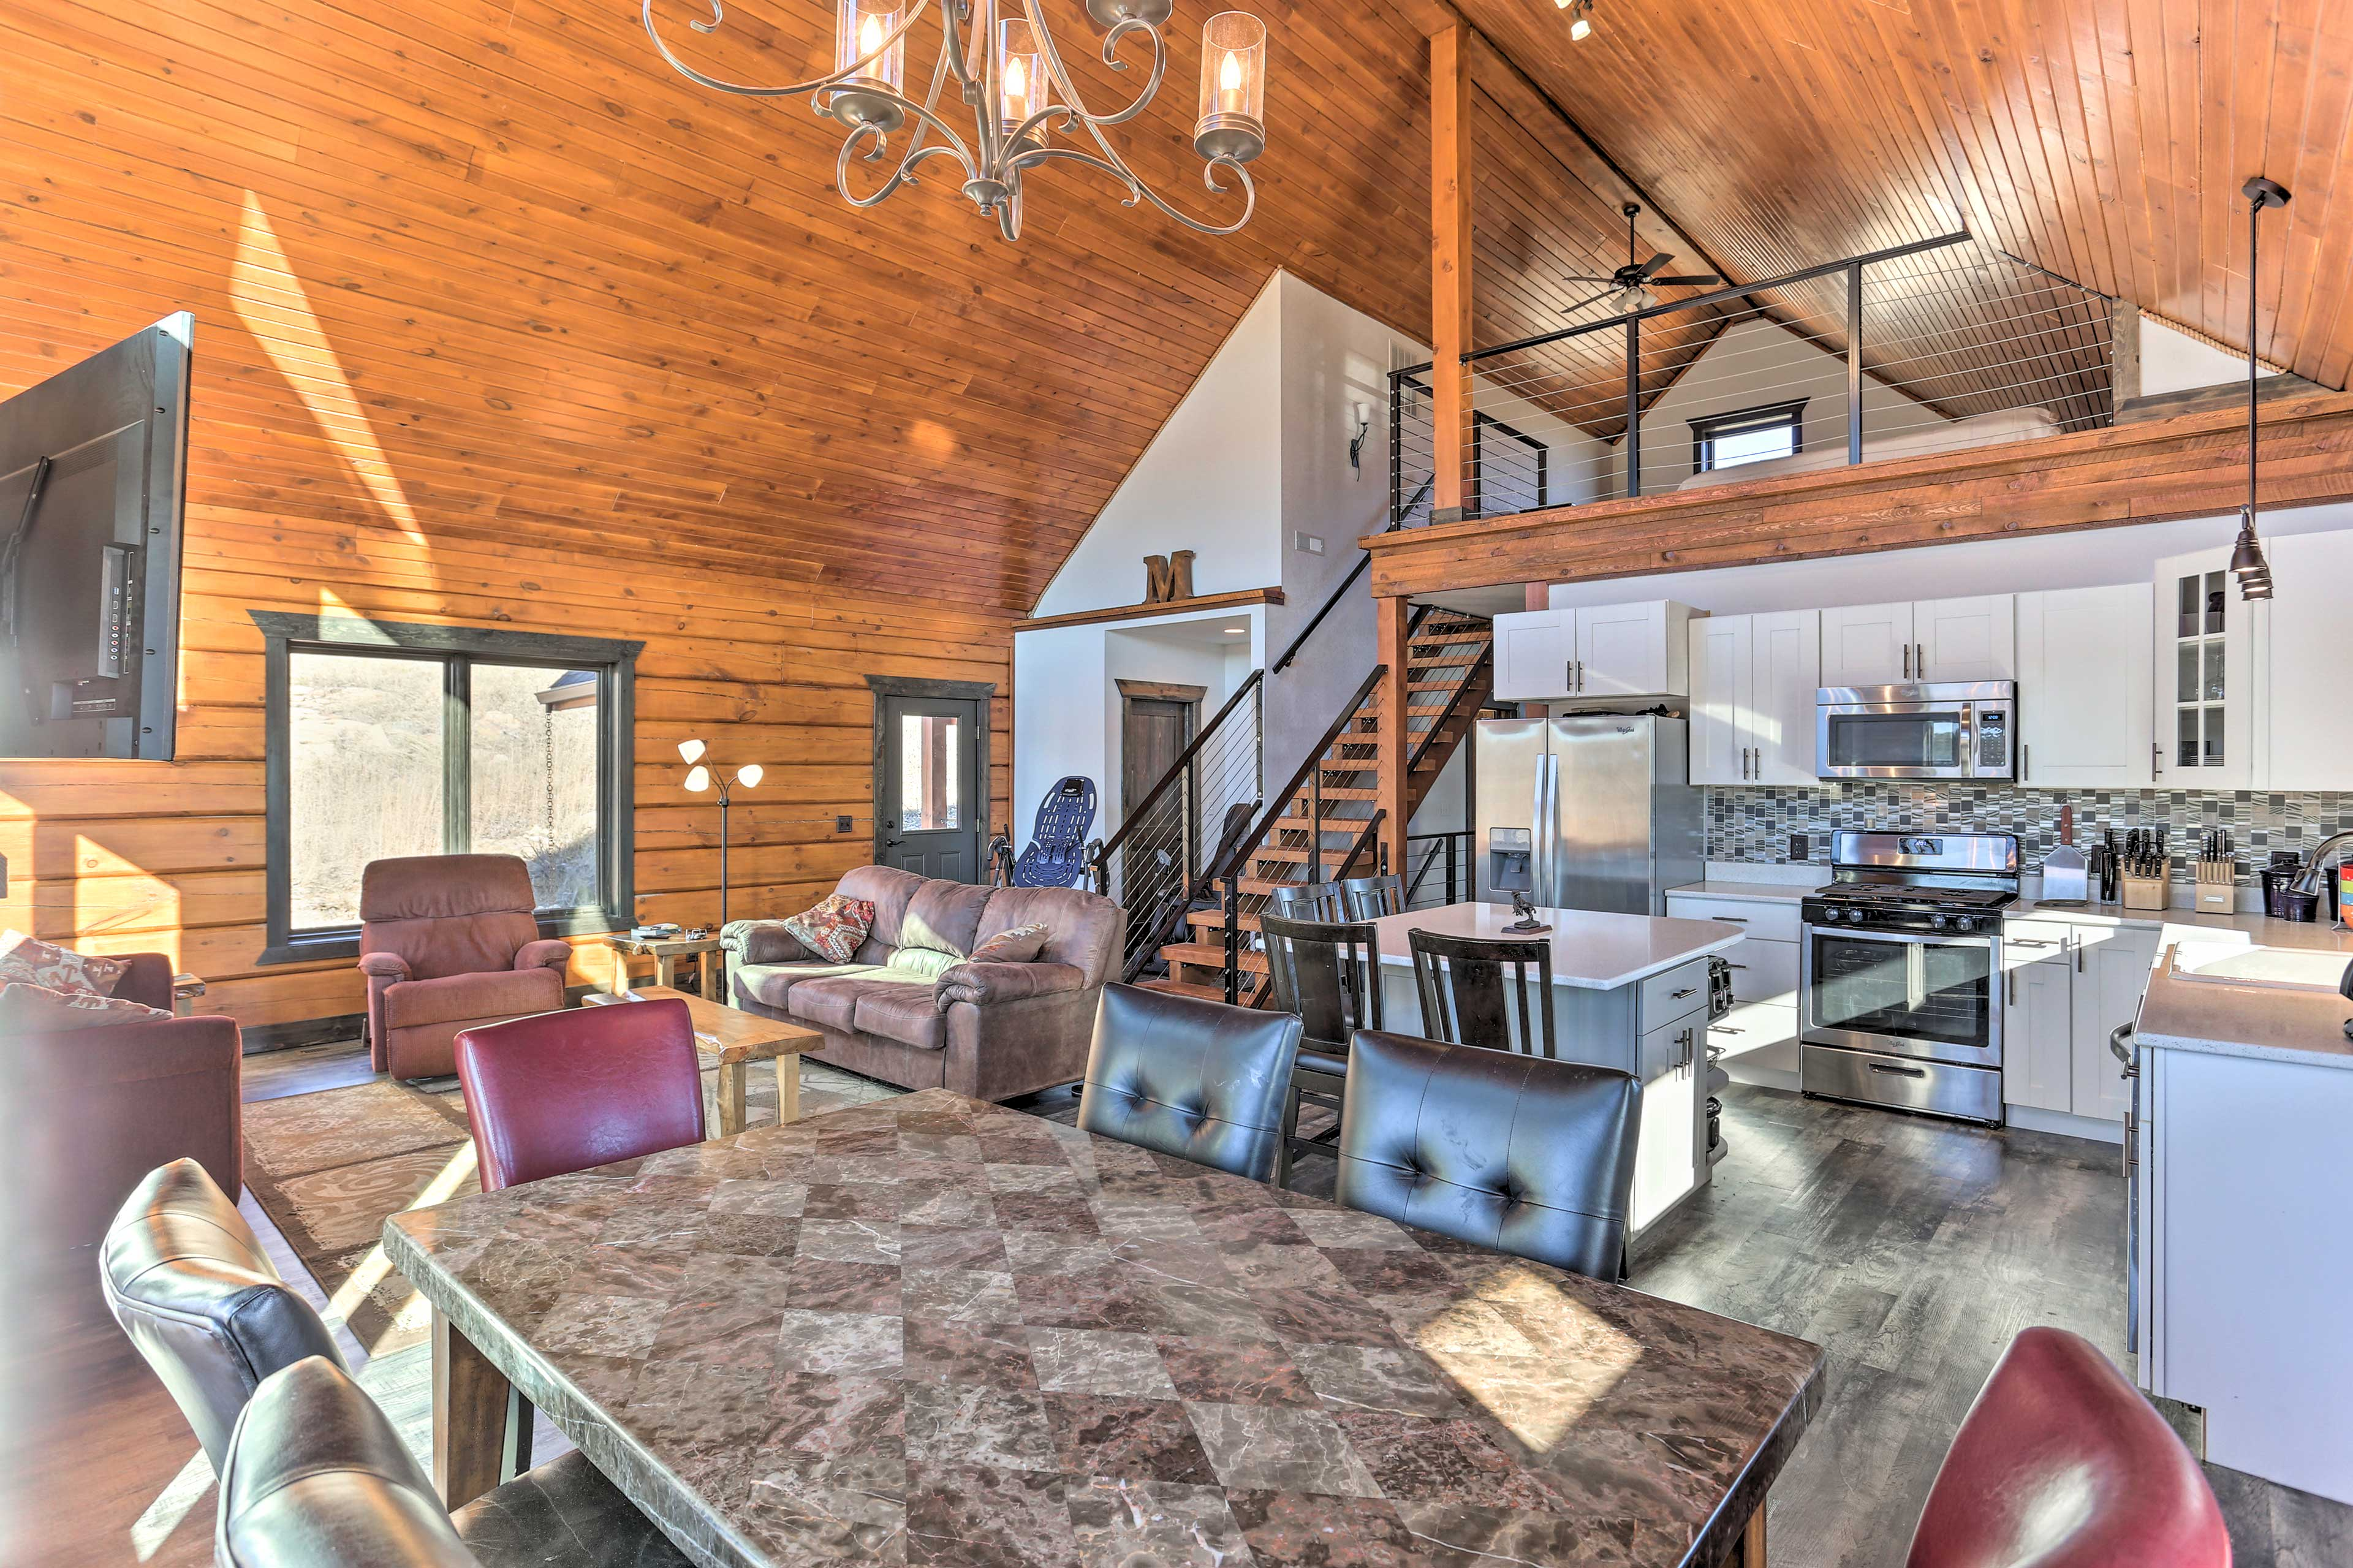 Vaulted wooden ceilings extend over the open concept space.